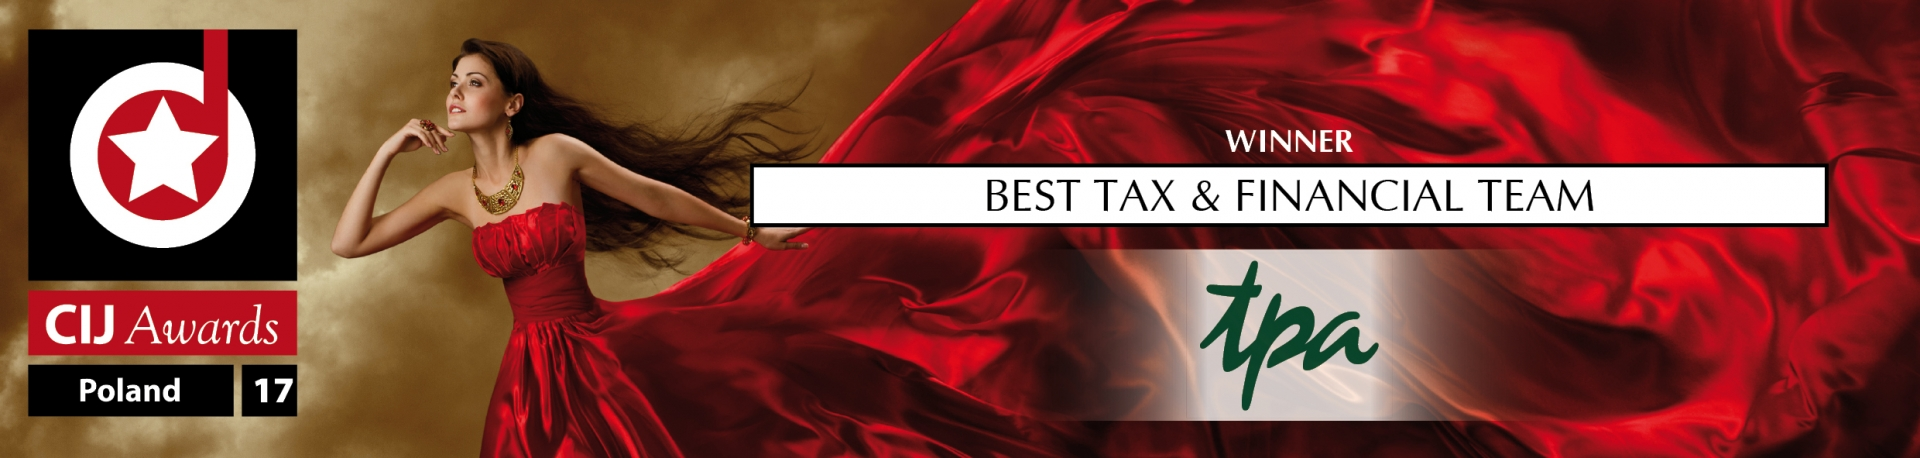 Podczas CIJ Awards Poland TPA Poland zdobywa nagrodę w kategorii Best Tax & Financial Team